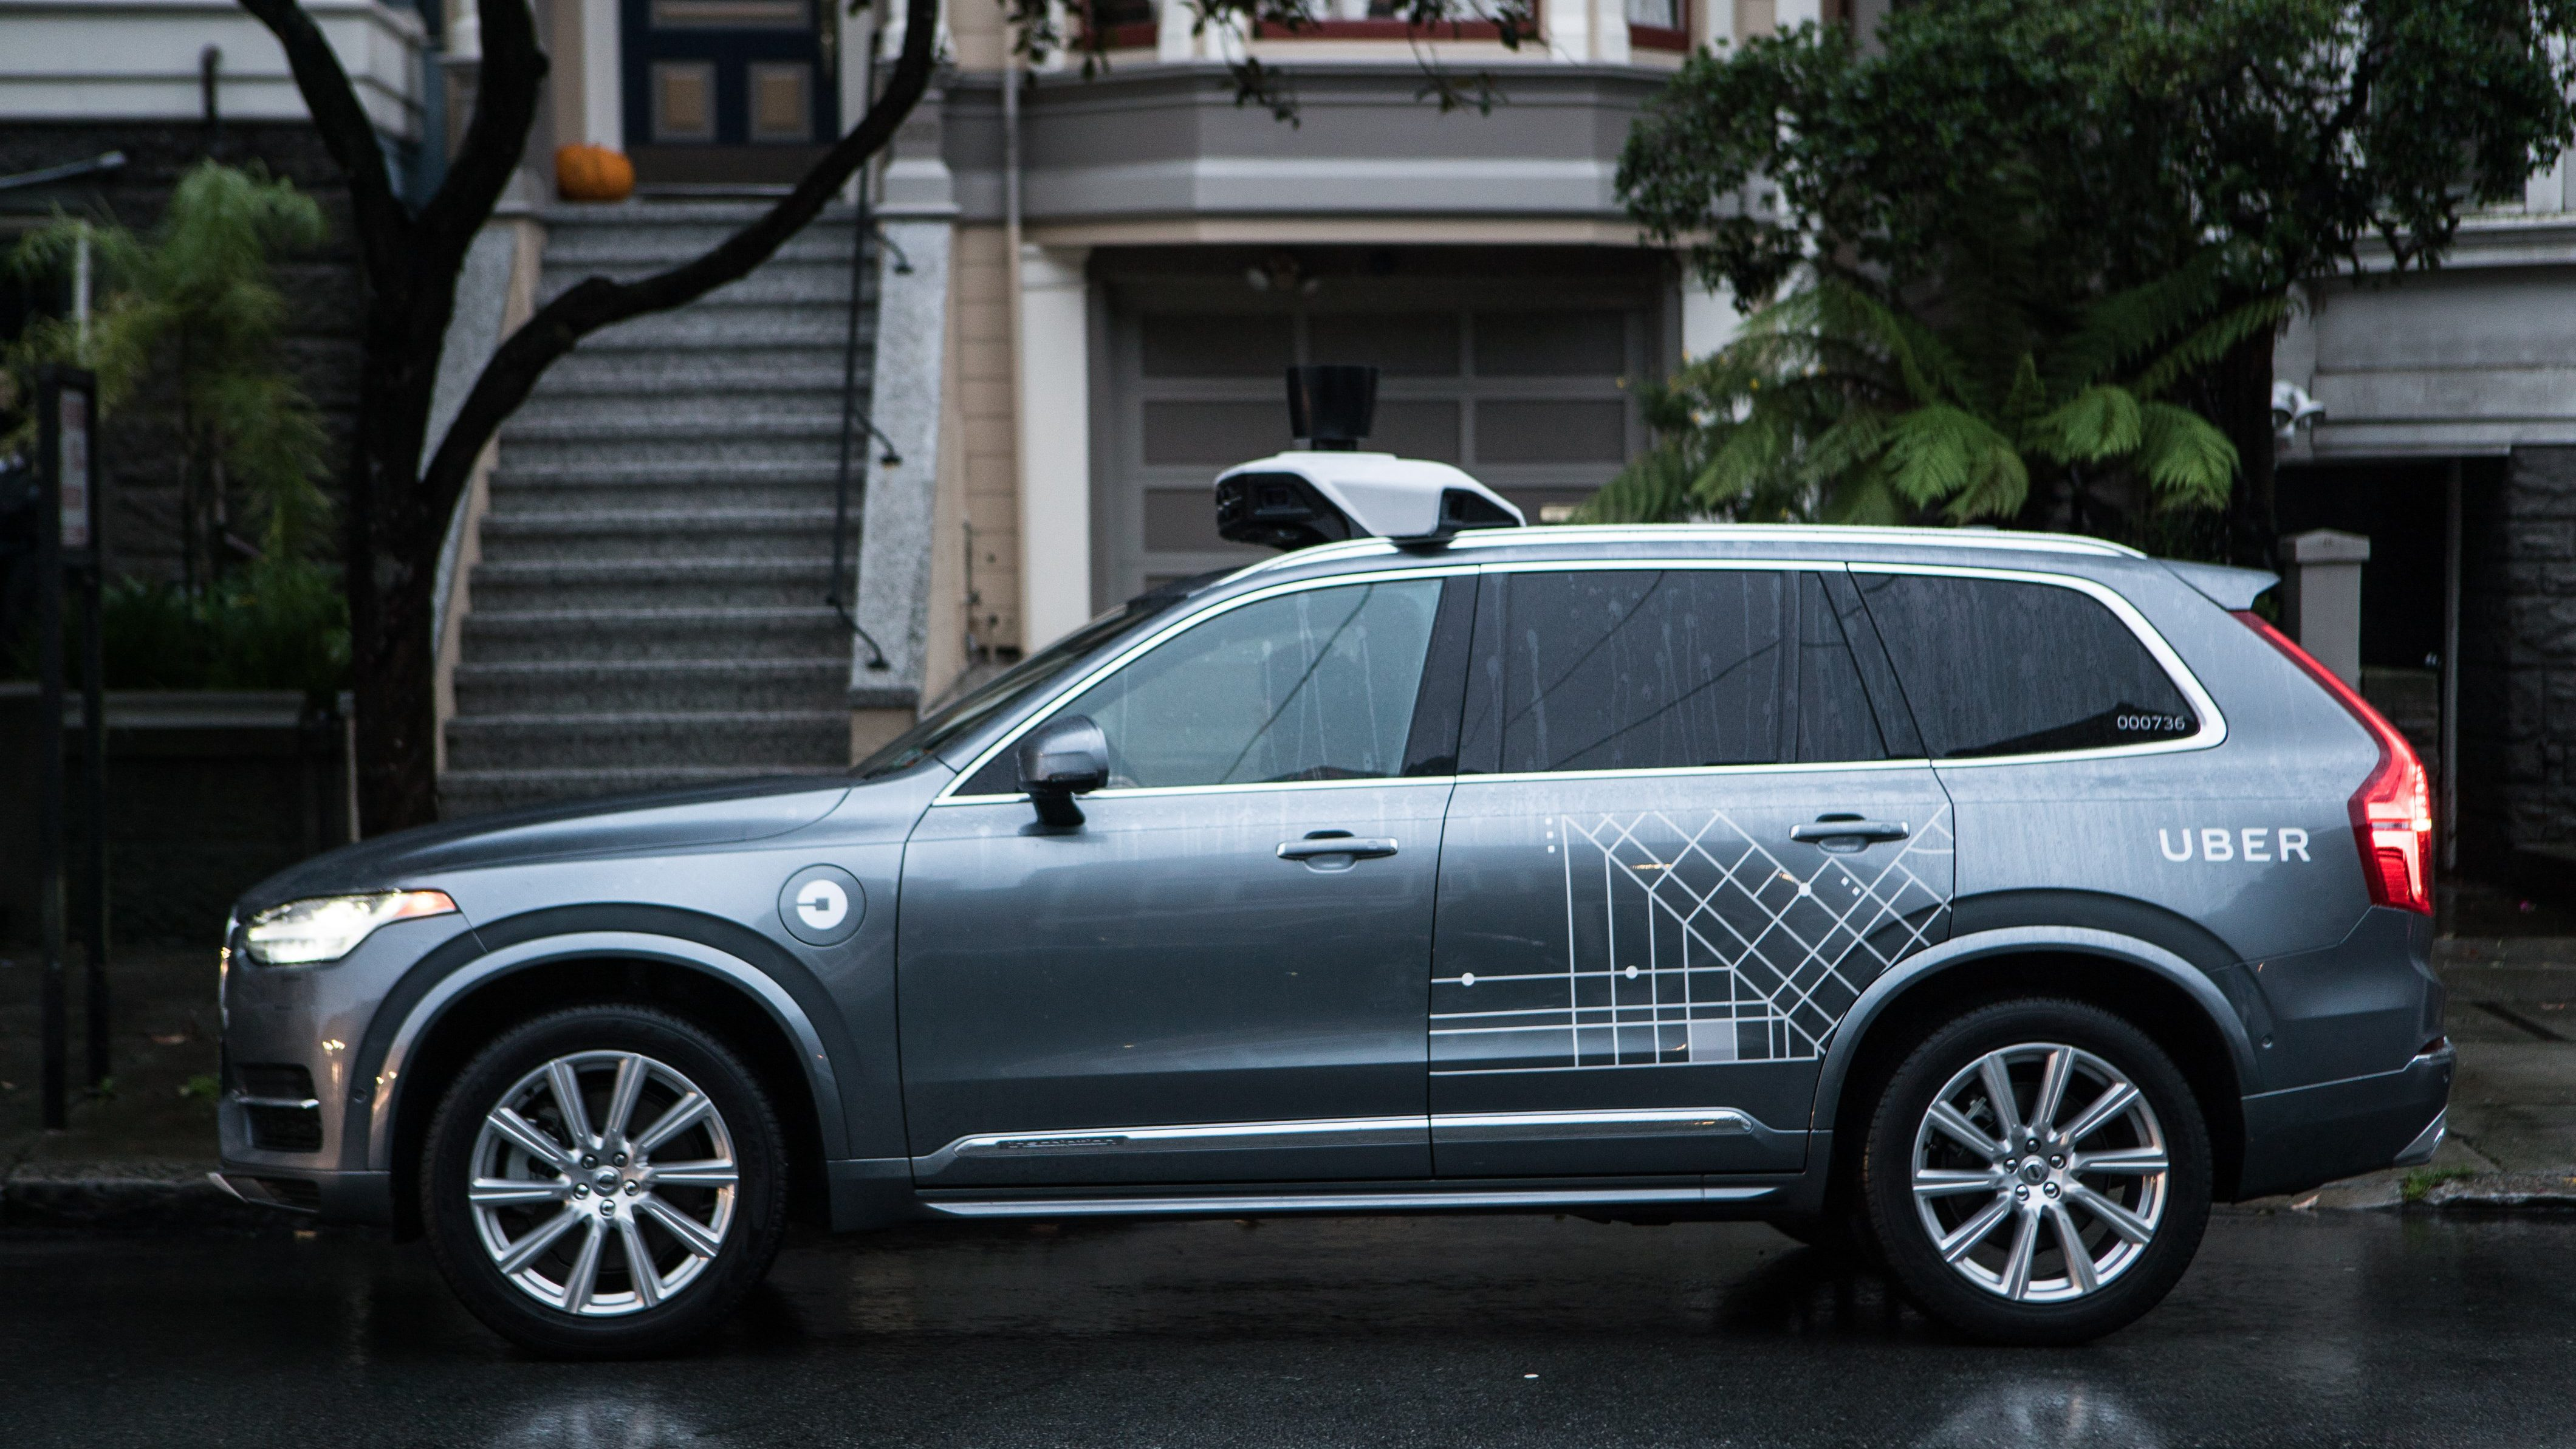 Uber is ing $1 billion worth of self driving XC90 cars from Volvo